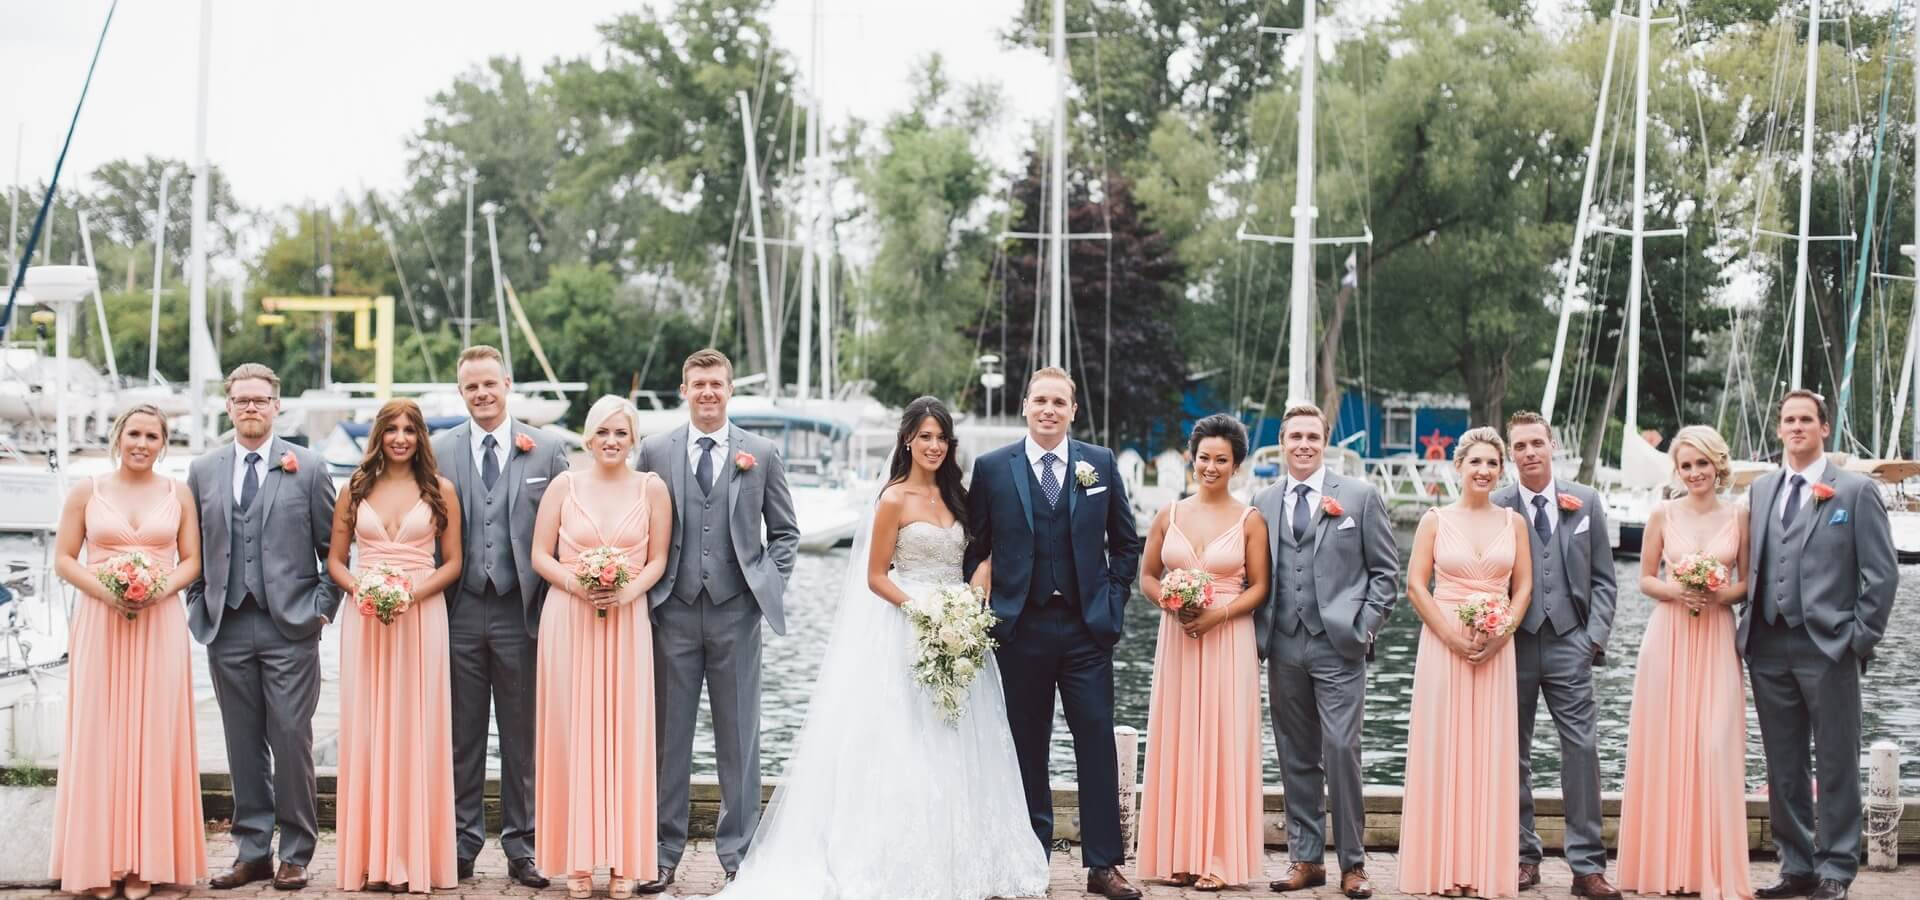 Hero image for Megan and James' Gorgeous Lake View Wedding at the Royal Canadian Yacht Club